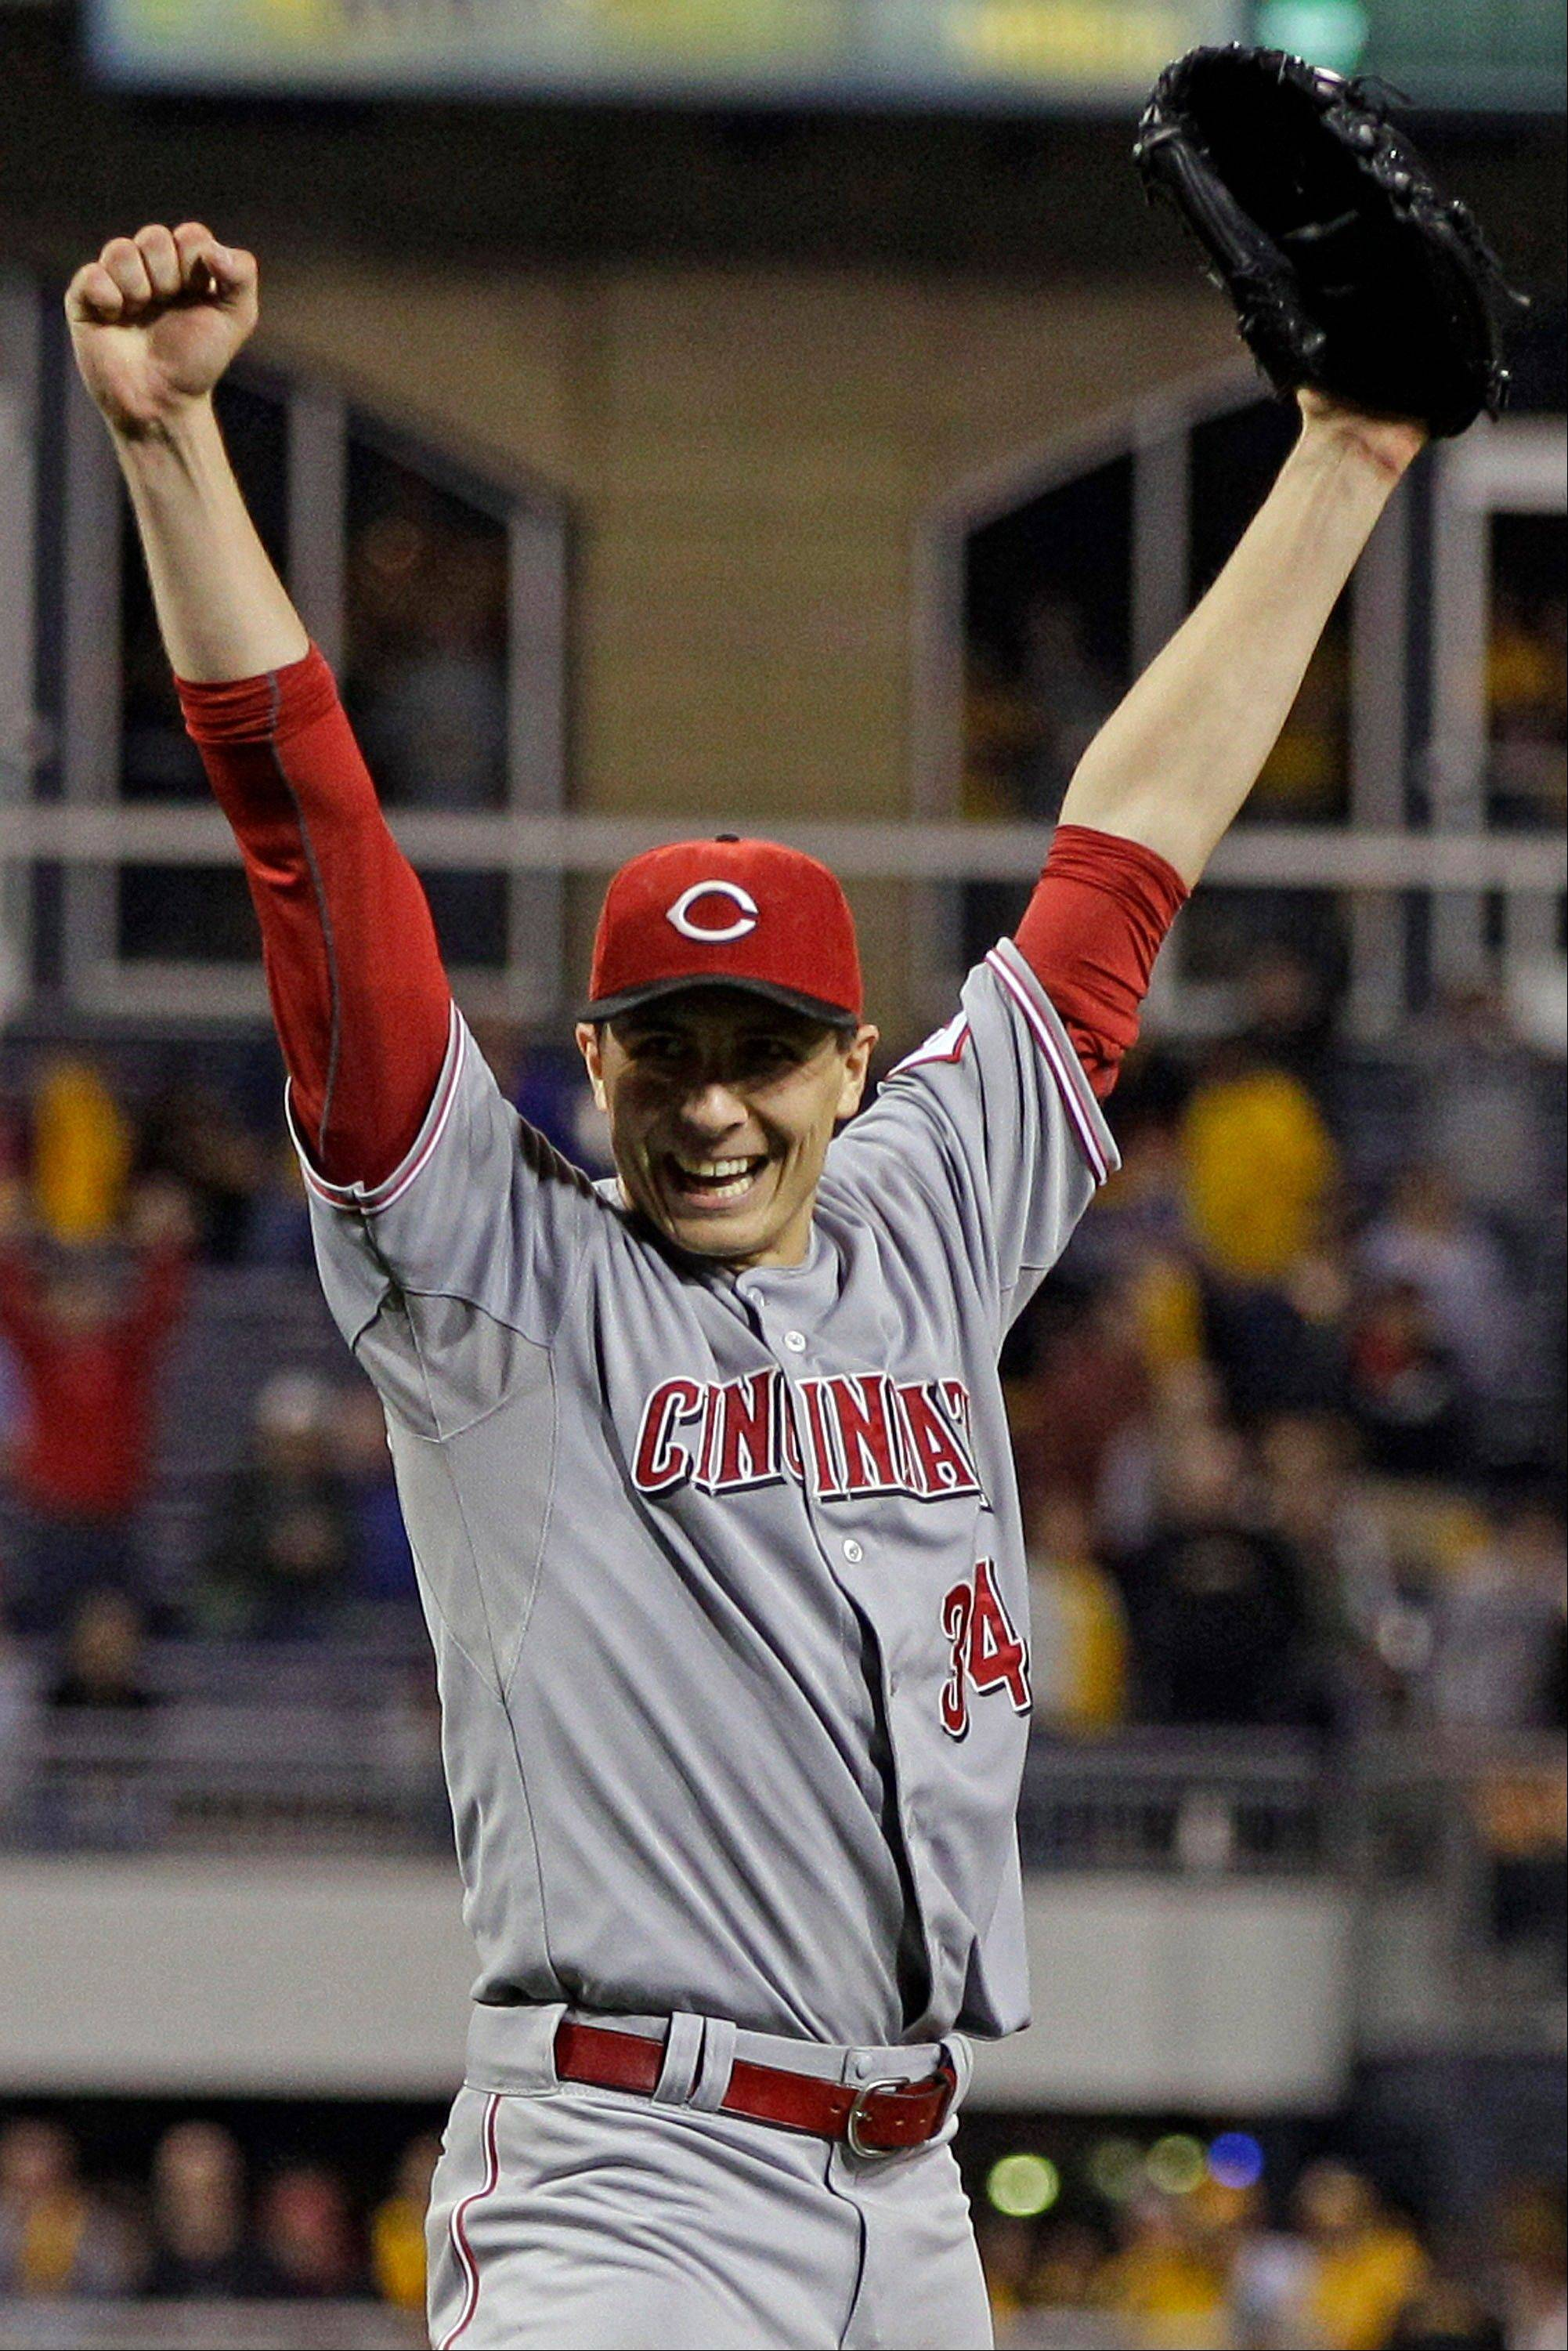 Cincinnati Reds starting pitcher Homer Bailey celebrates getting the final out of a no-hitter Friday in Pittsburgh.